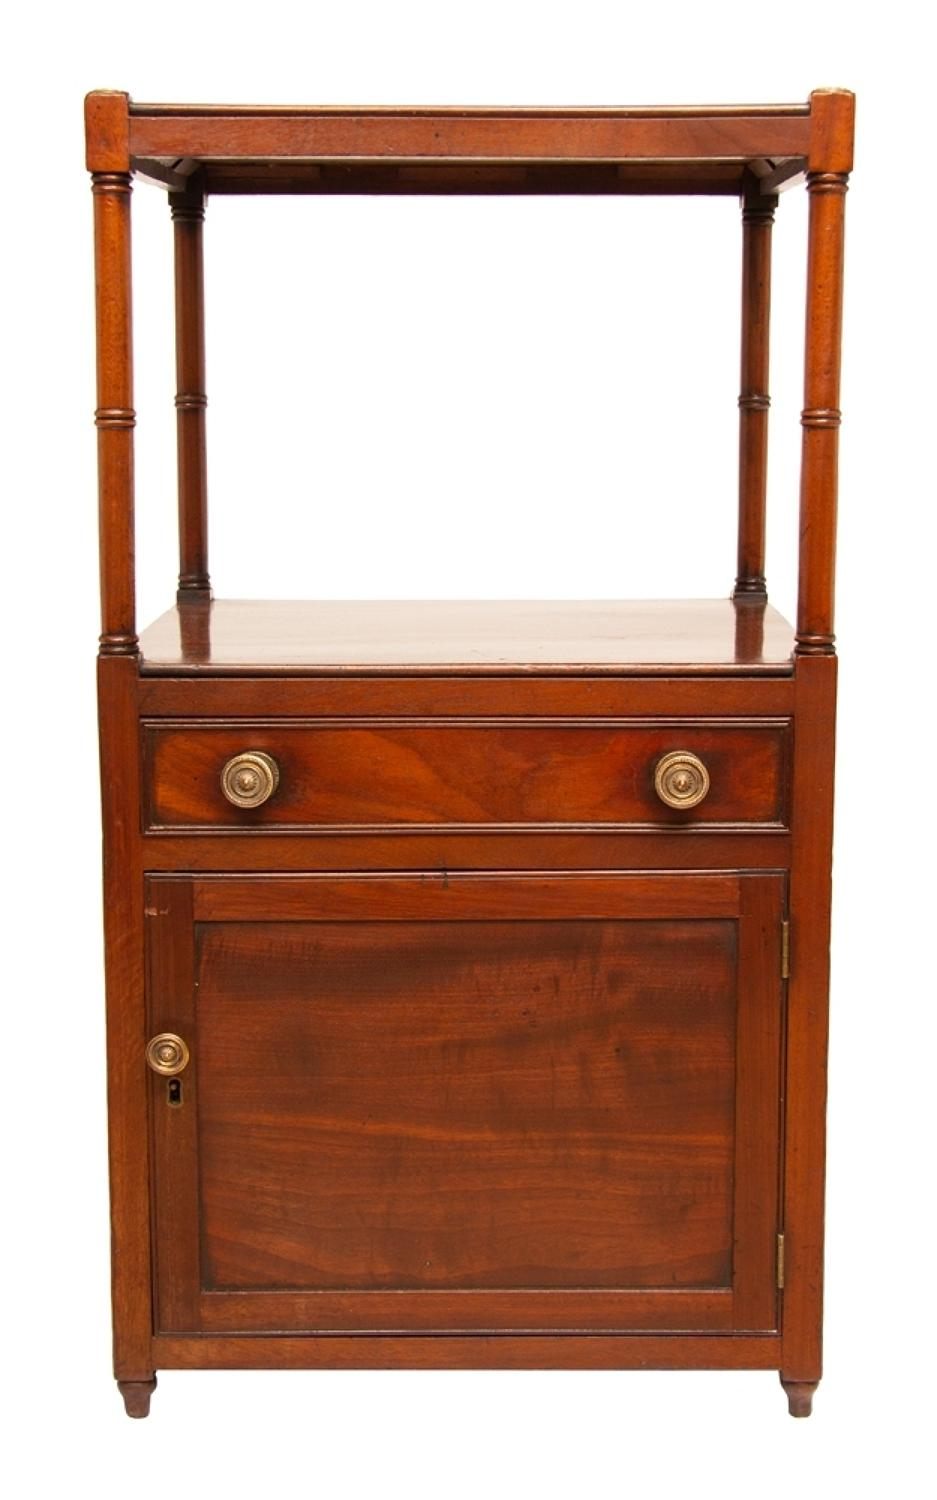 Early Georgian Mahogany Washstand with Drawer